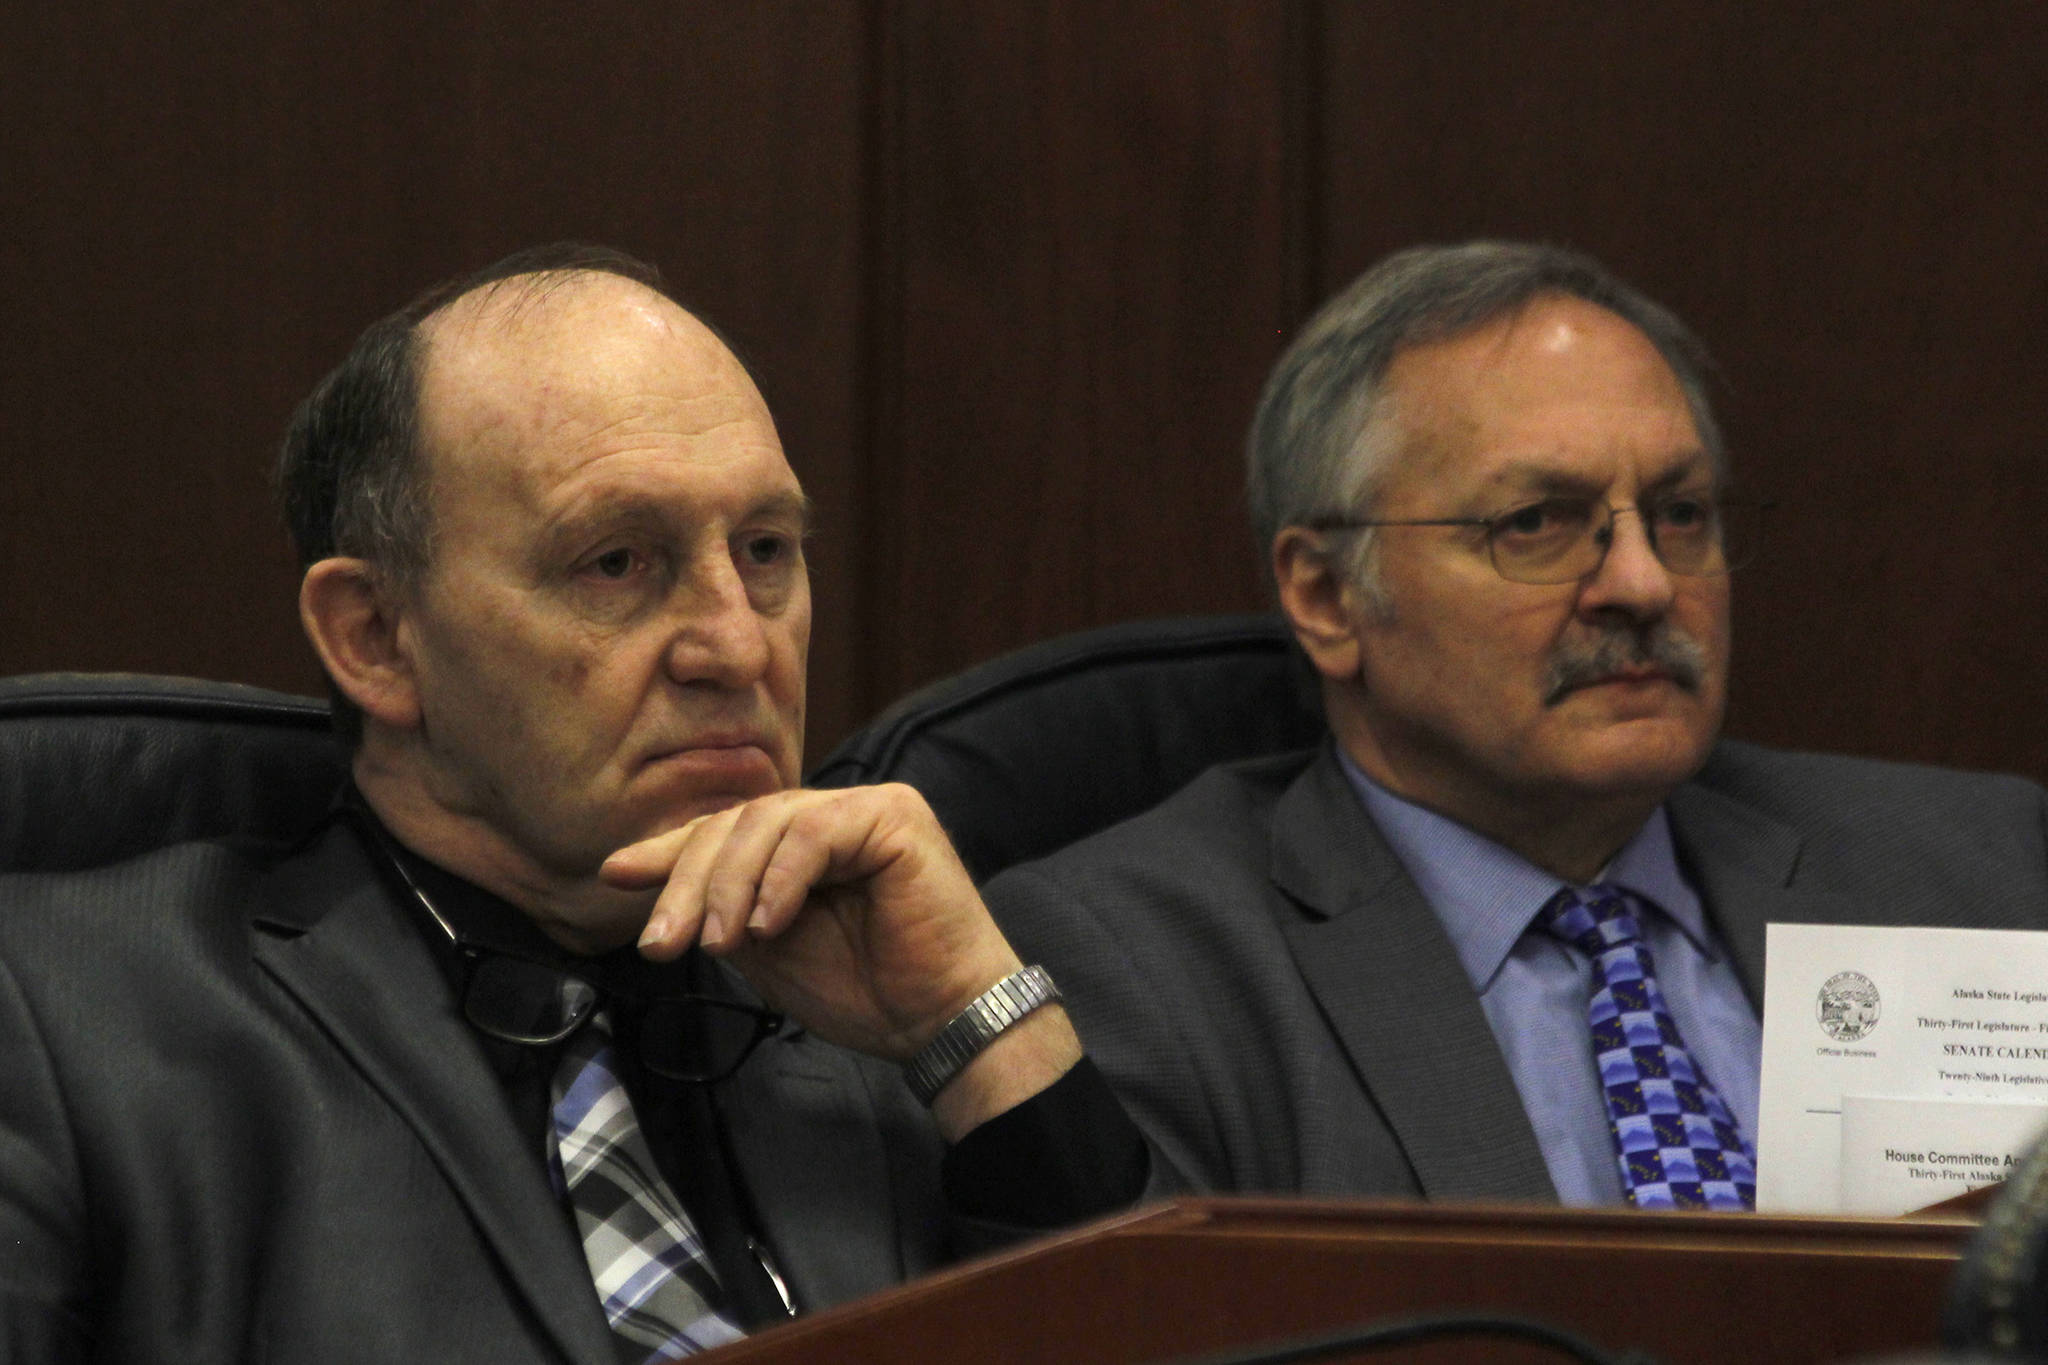 Rep. Gary Knopp, R-Kenai, and Rep. Dave Talerico, R-Healy, sit next to each other after Knopp voted not to confirm Talerico as Speaker of the House on Tuesday. (Alex McCarthy | Juneau Empire)